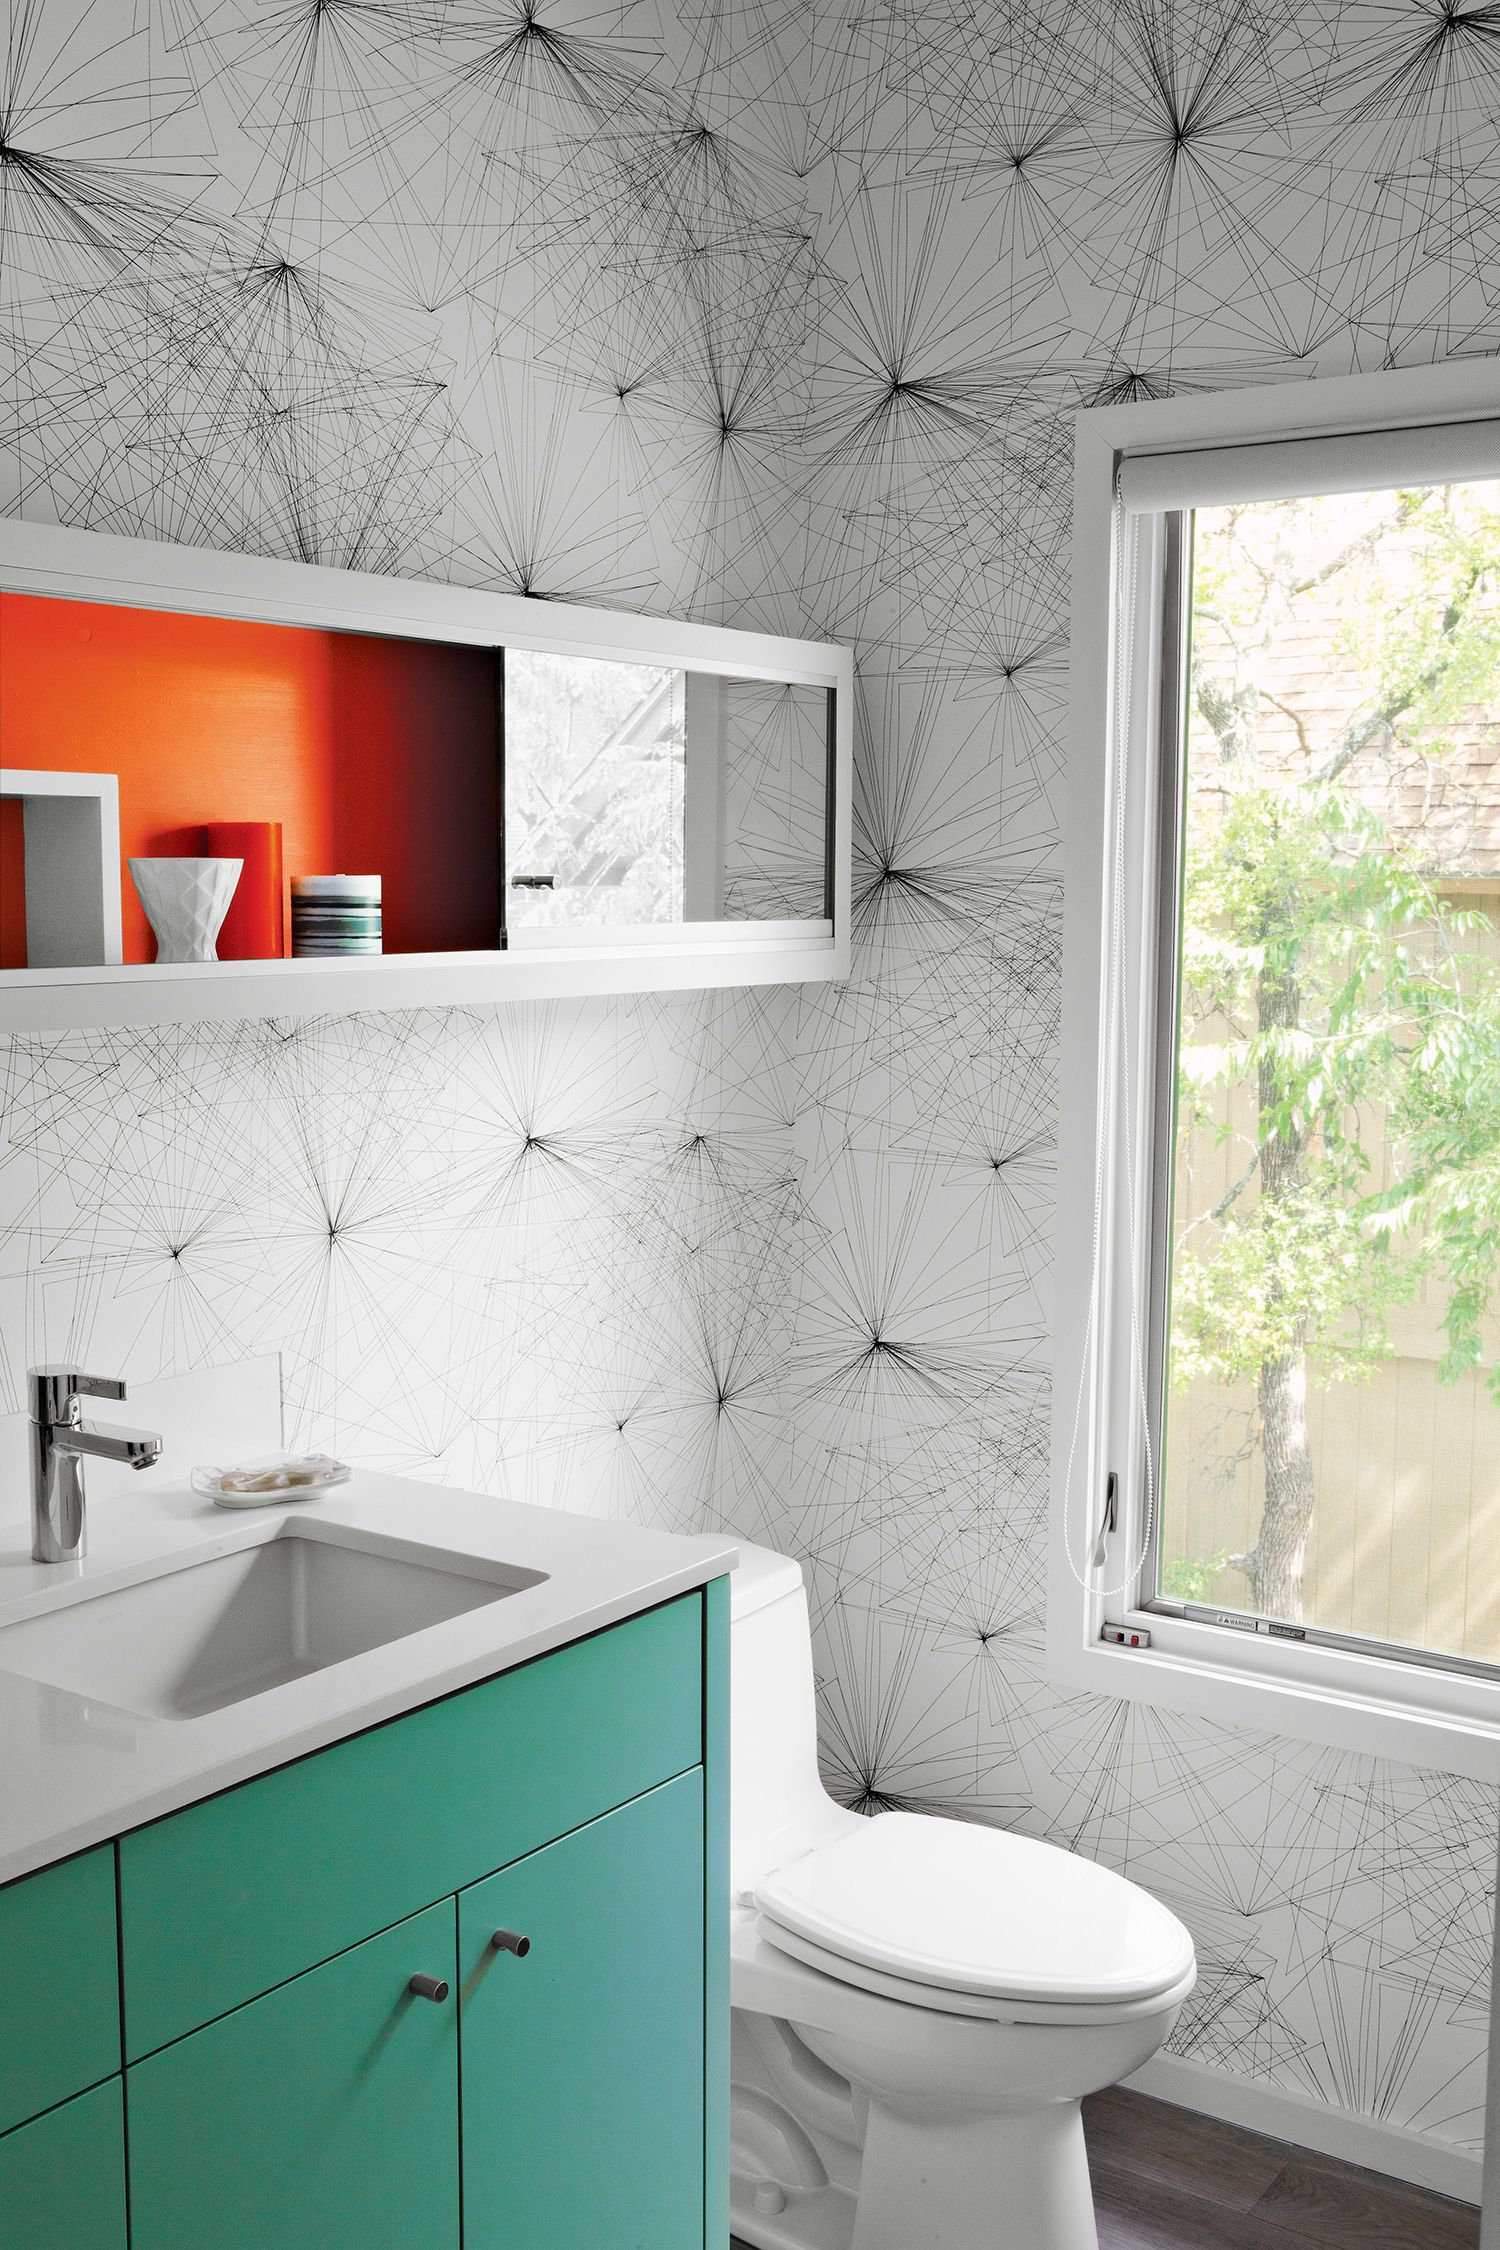 Photo 9 of 11 in 10 Hip Wallpaper Designs from A Renovated ...